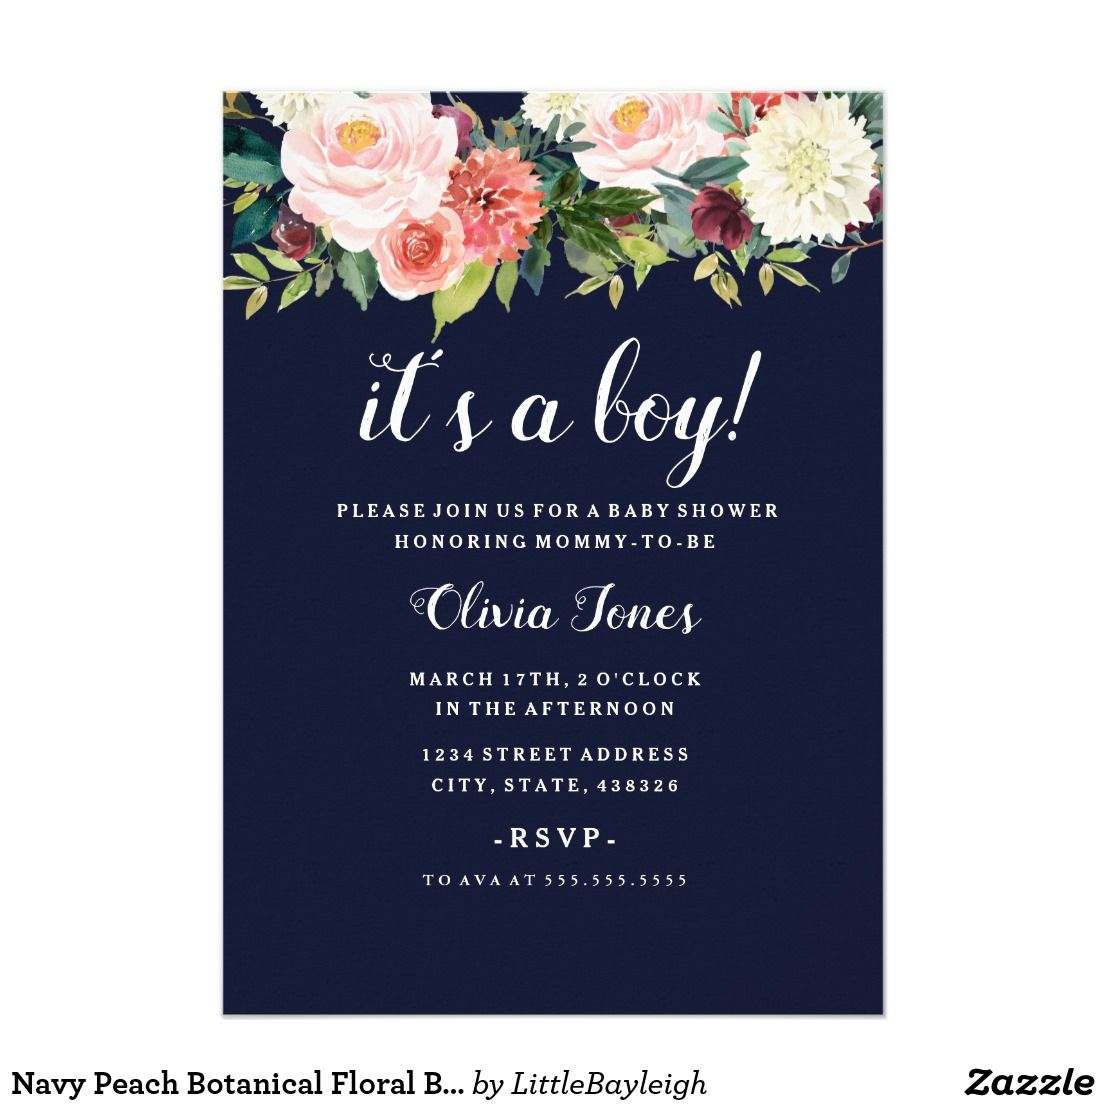 Navy Peach Botanical Floral Baby Shower Card